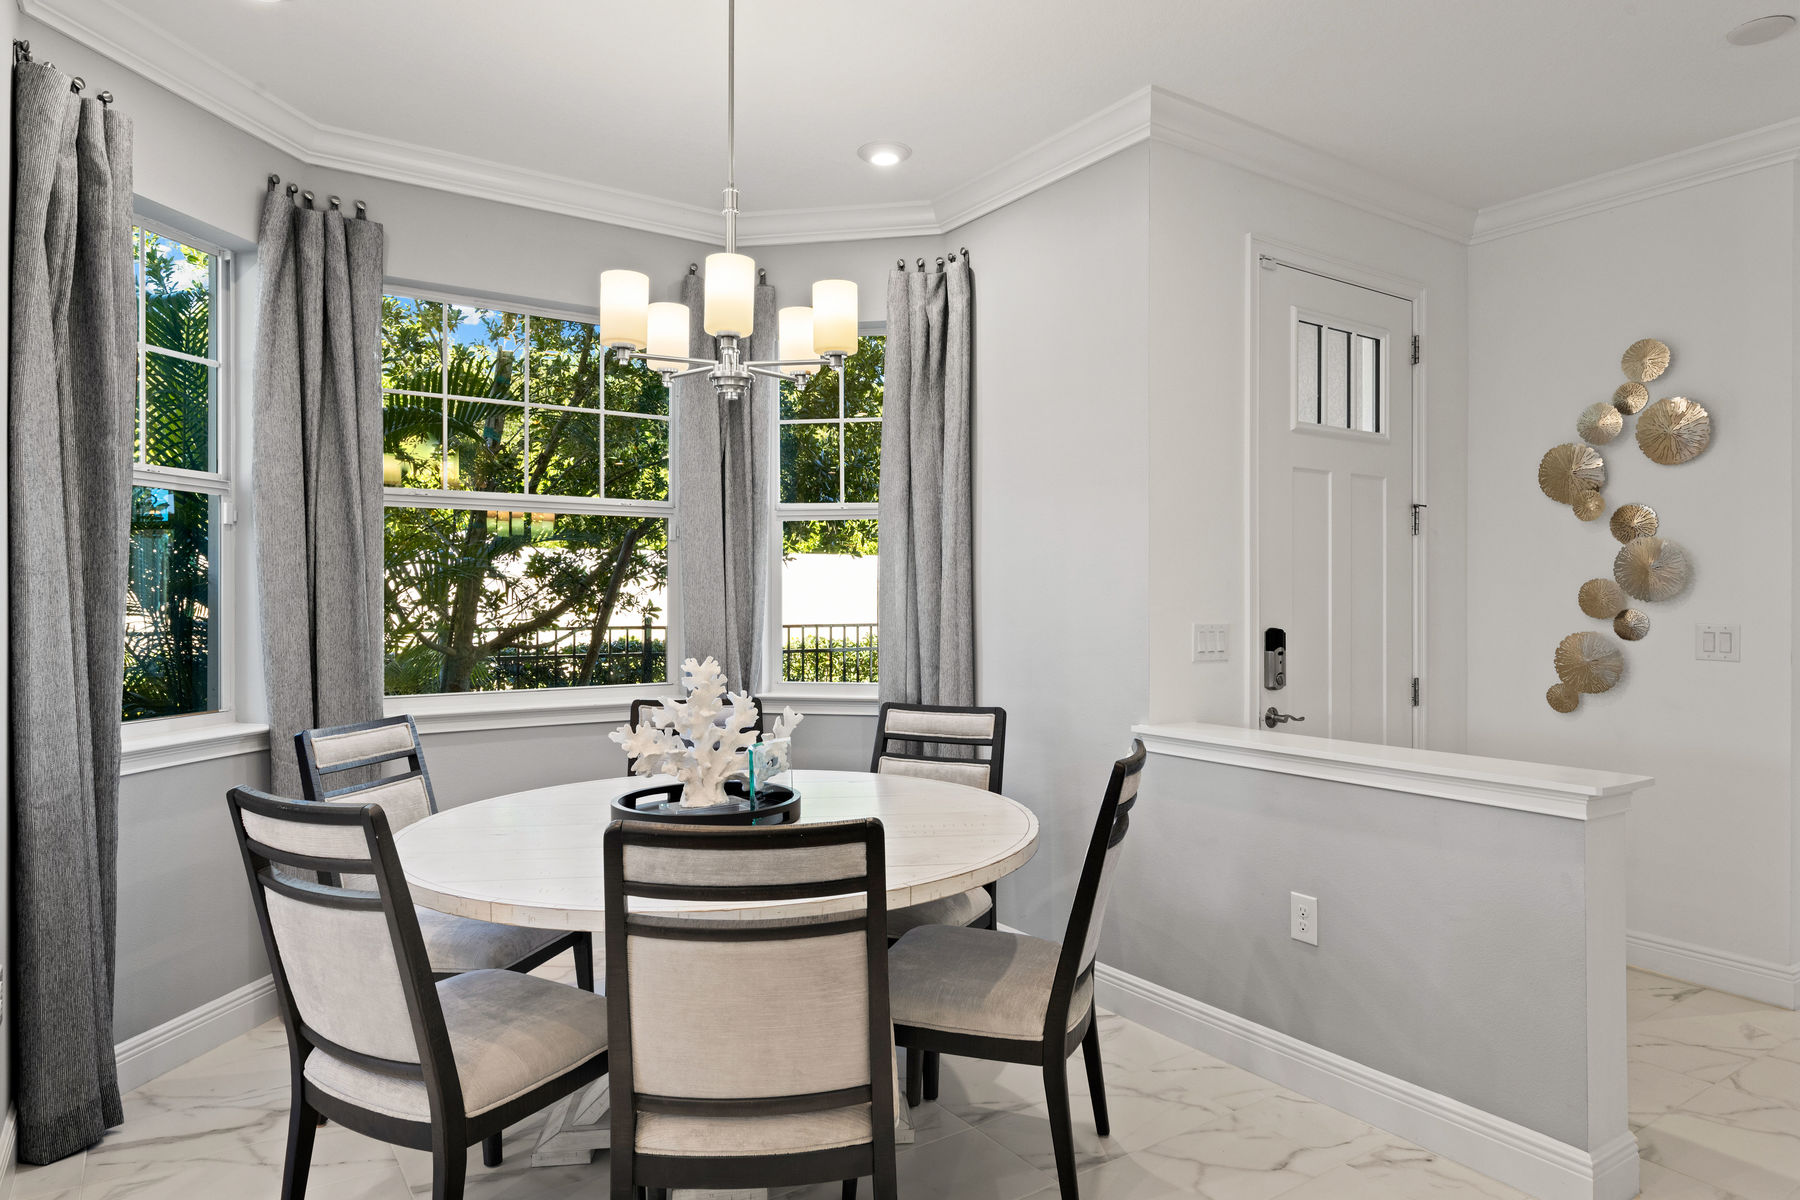 Captiva II Plan Dining at Arboretum in Naples Florida by Mattamy Homes